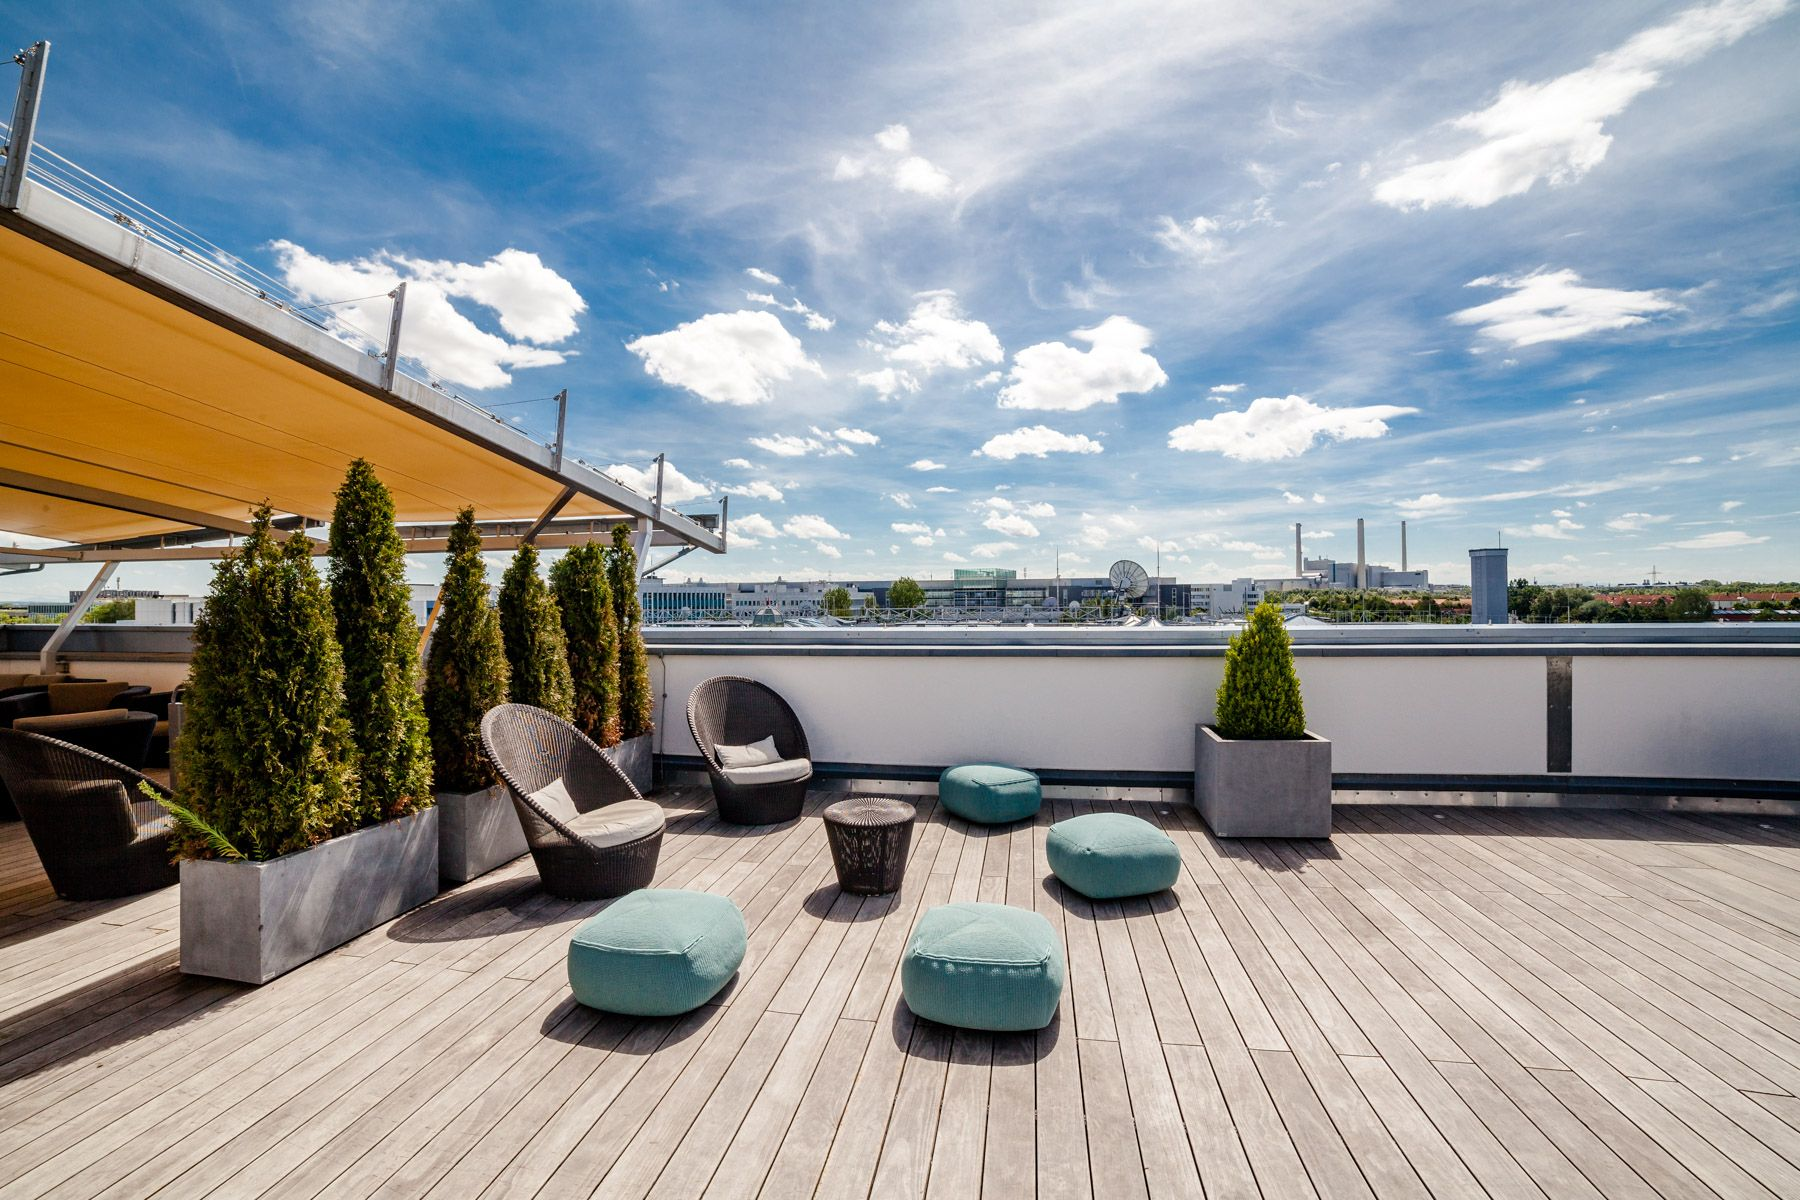 Rooftop Design Custom 7 Rooftop Deck And Terrace Designs For Your Next Commercial . Review